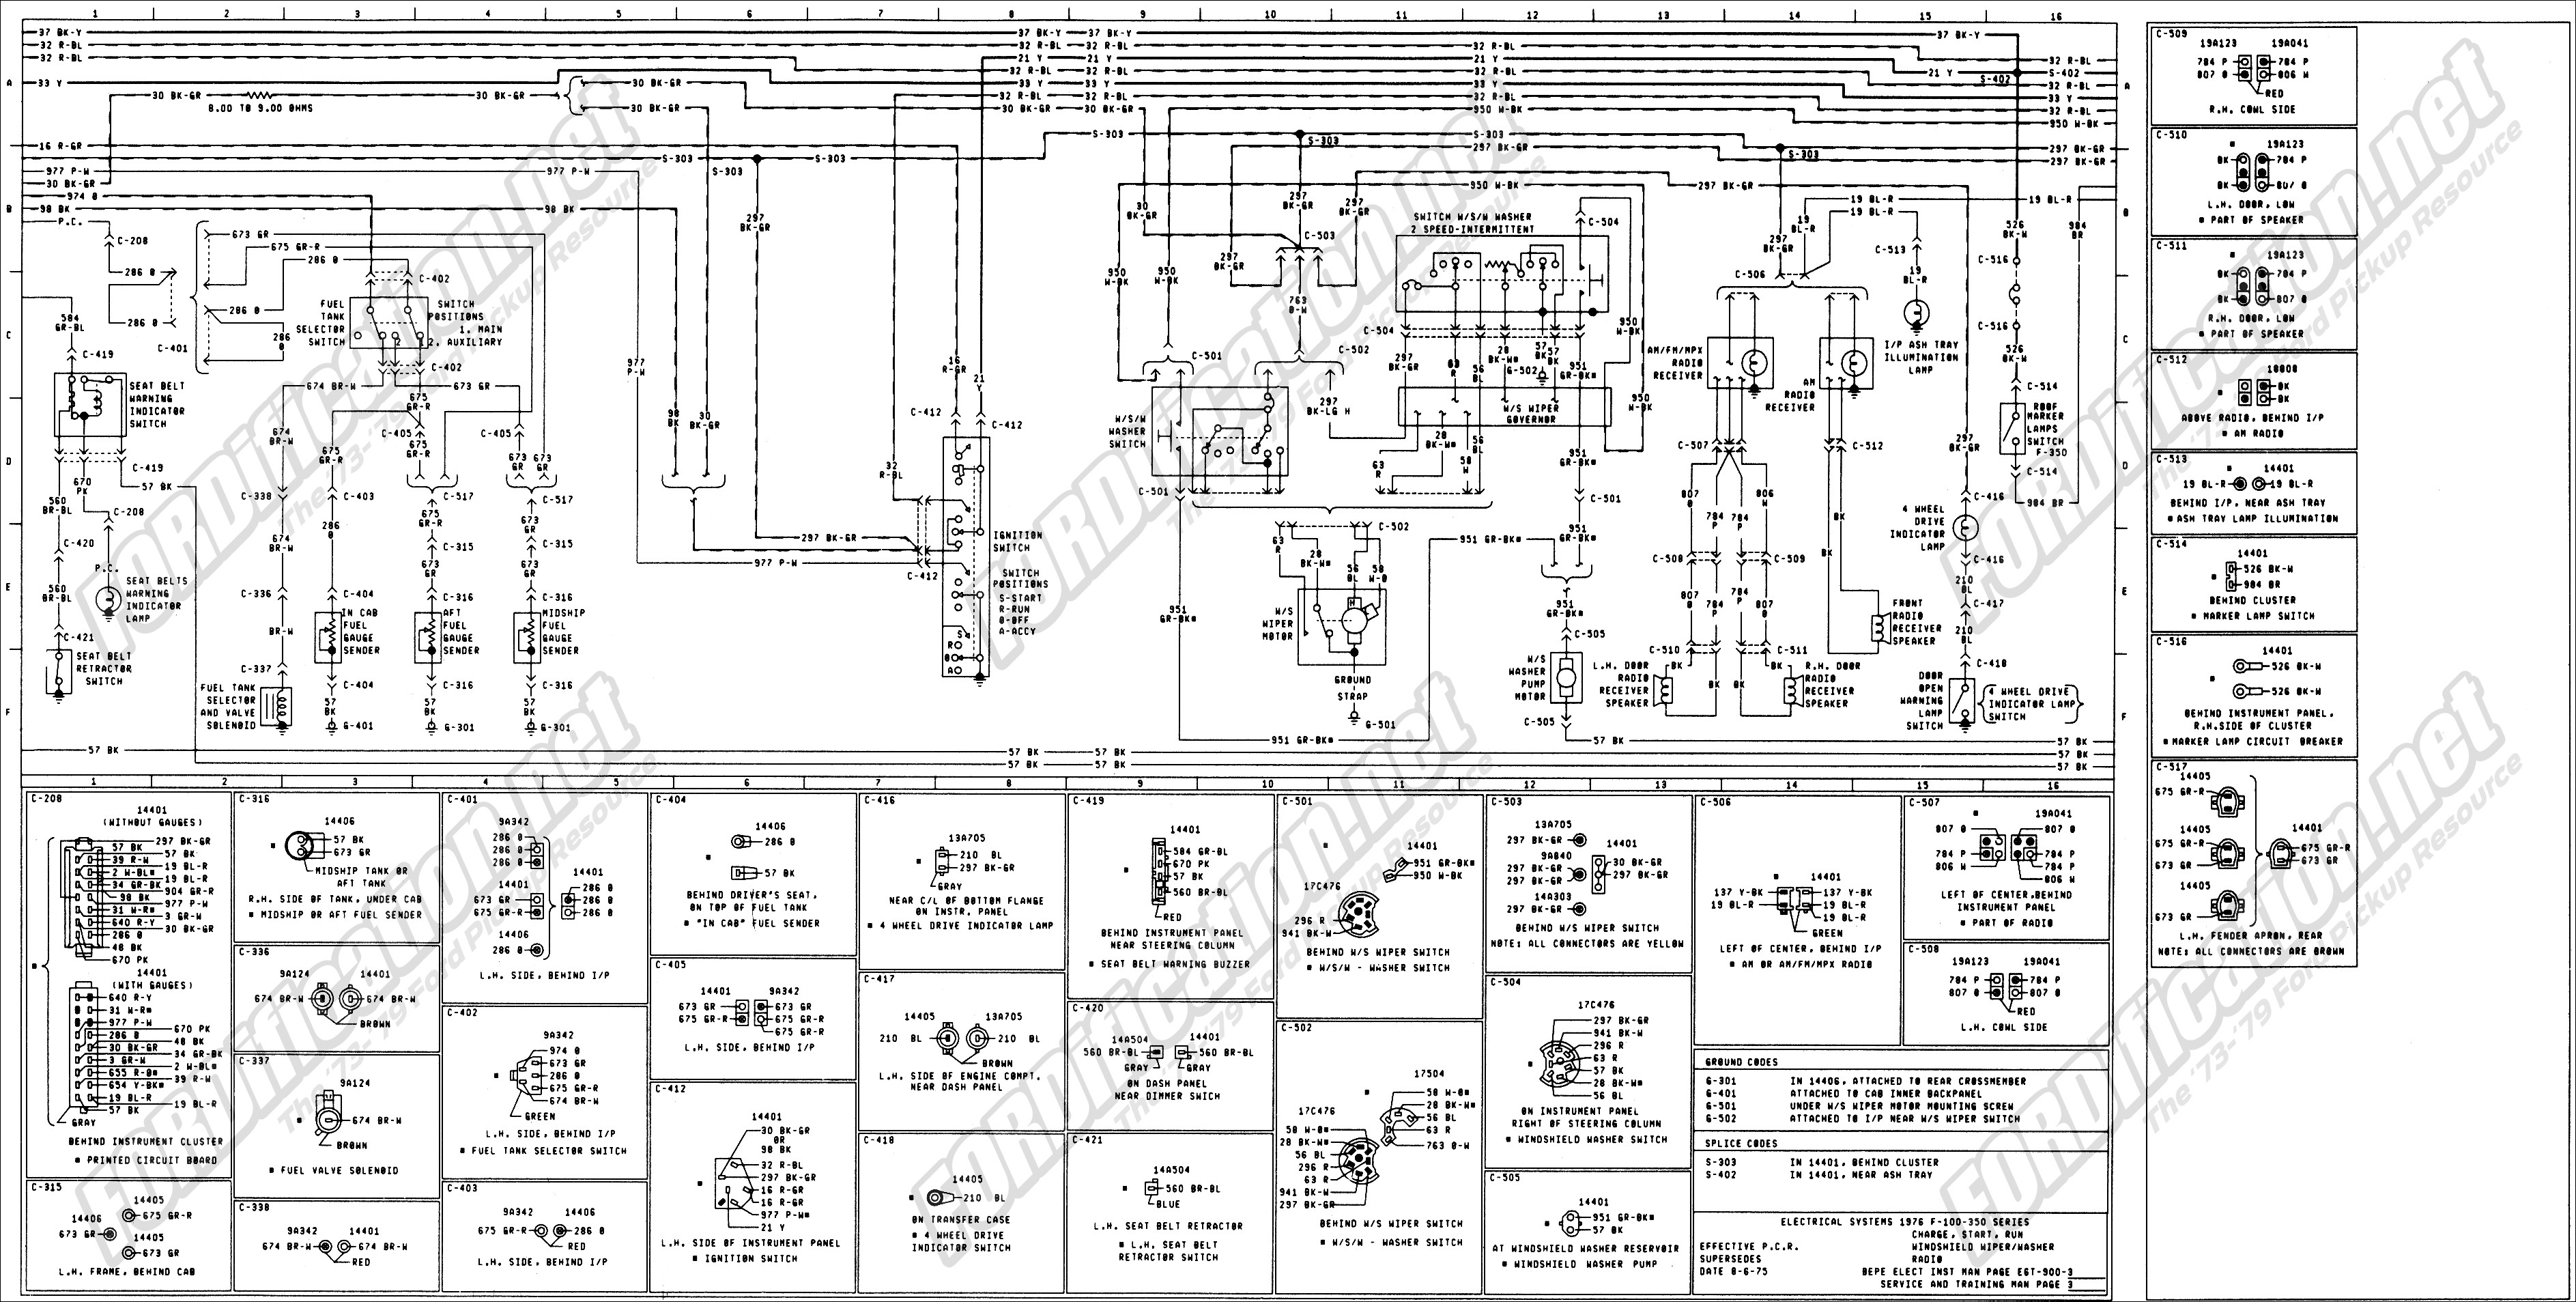 Transit Engine Diagram Wiring Schematic for A C Heat A 1984 F250 Diesel ford Truck Of Transit Engine Diagram